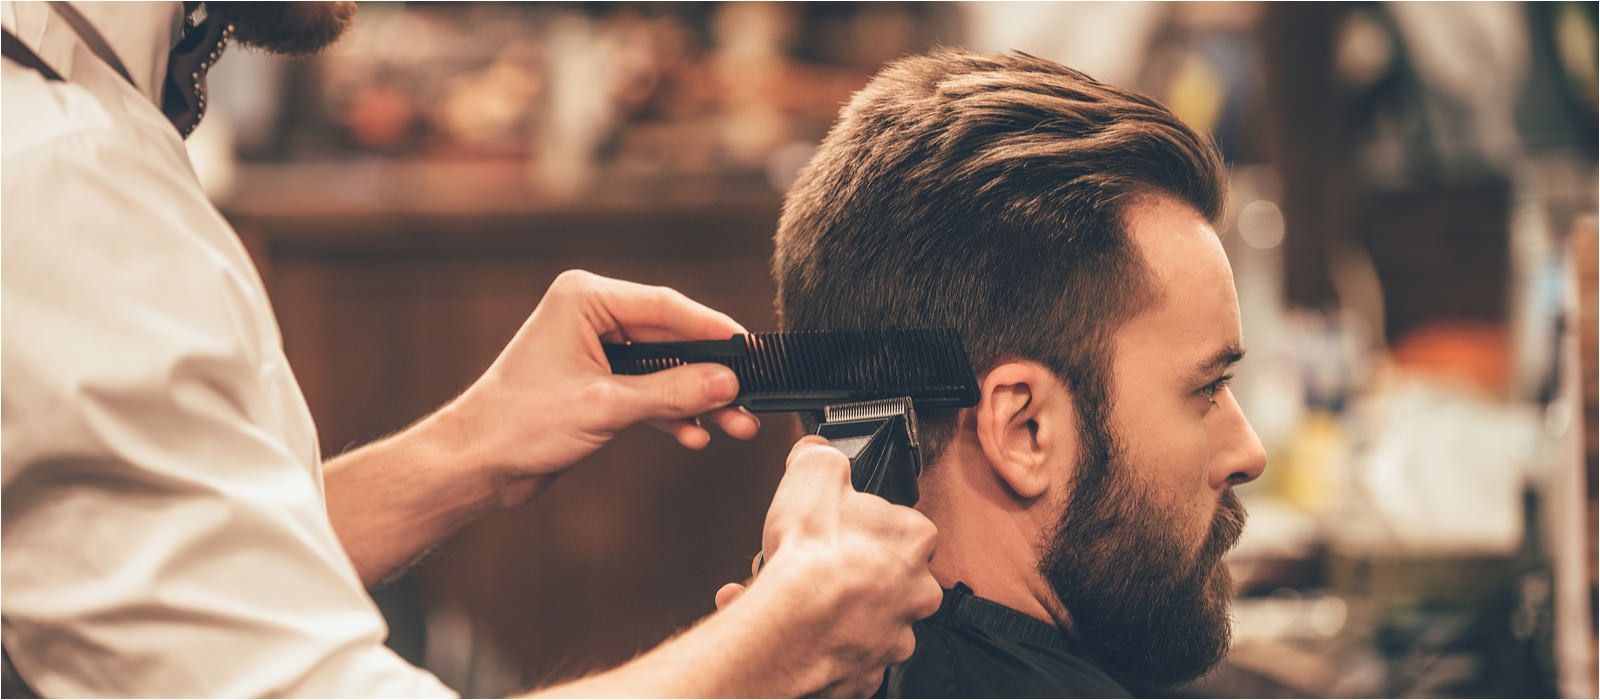 What to ask for when Getting A Haircut Men Search 1 000 S Of Hairstyles & Cuts for Women & Men 2018